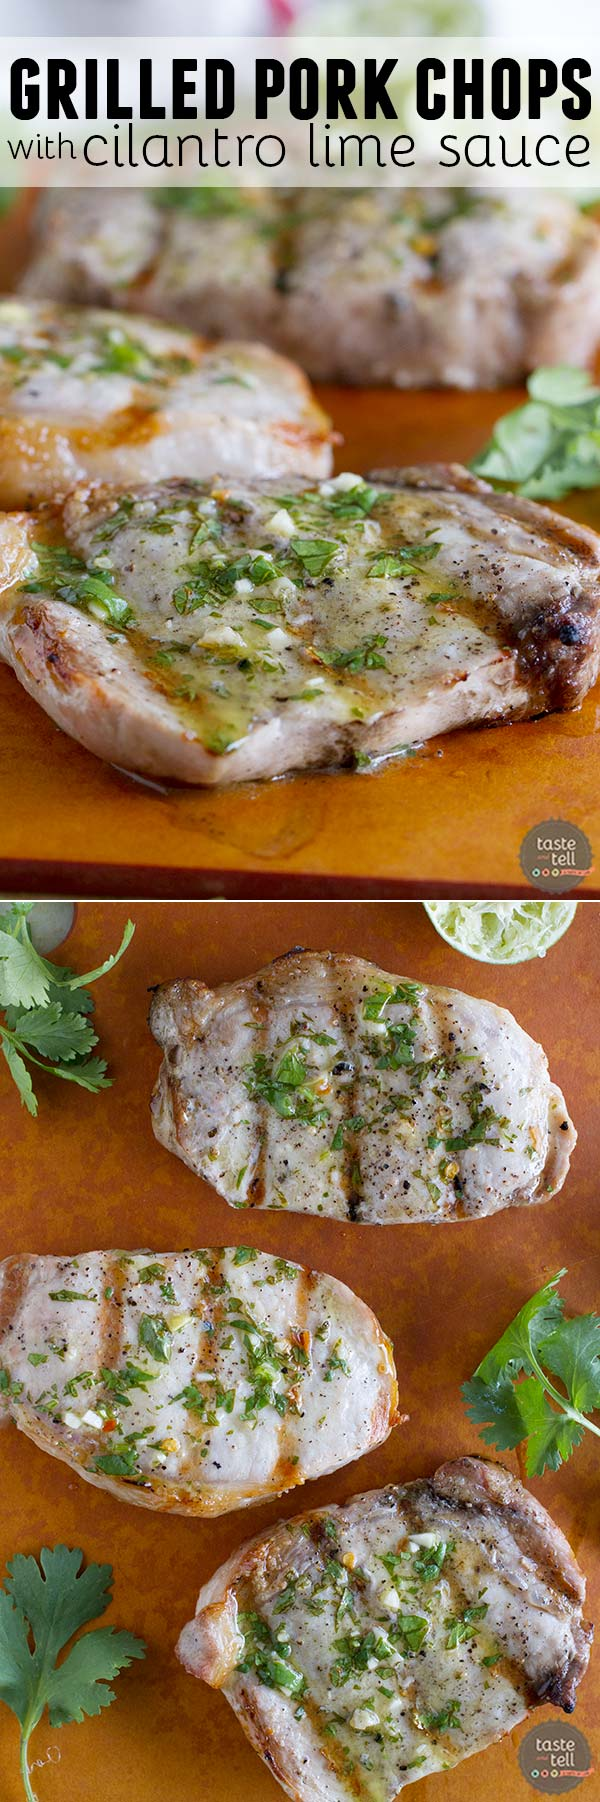 Simple and healthy, these Grilled Pork Chops with Cilantro Lime Sauce are packed with flavor and done in under half an hour.